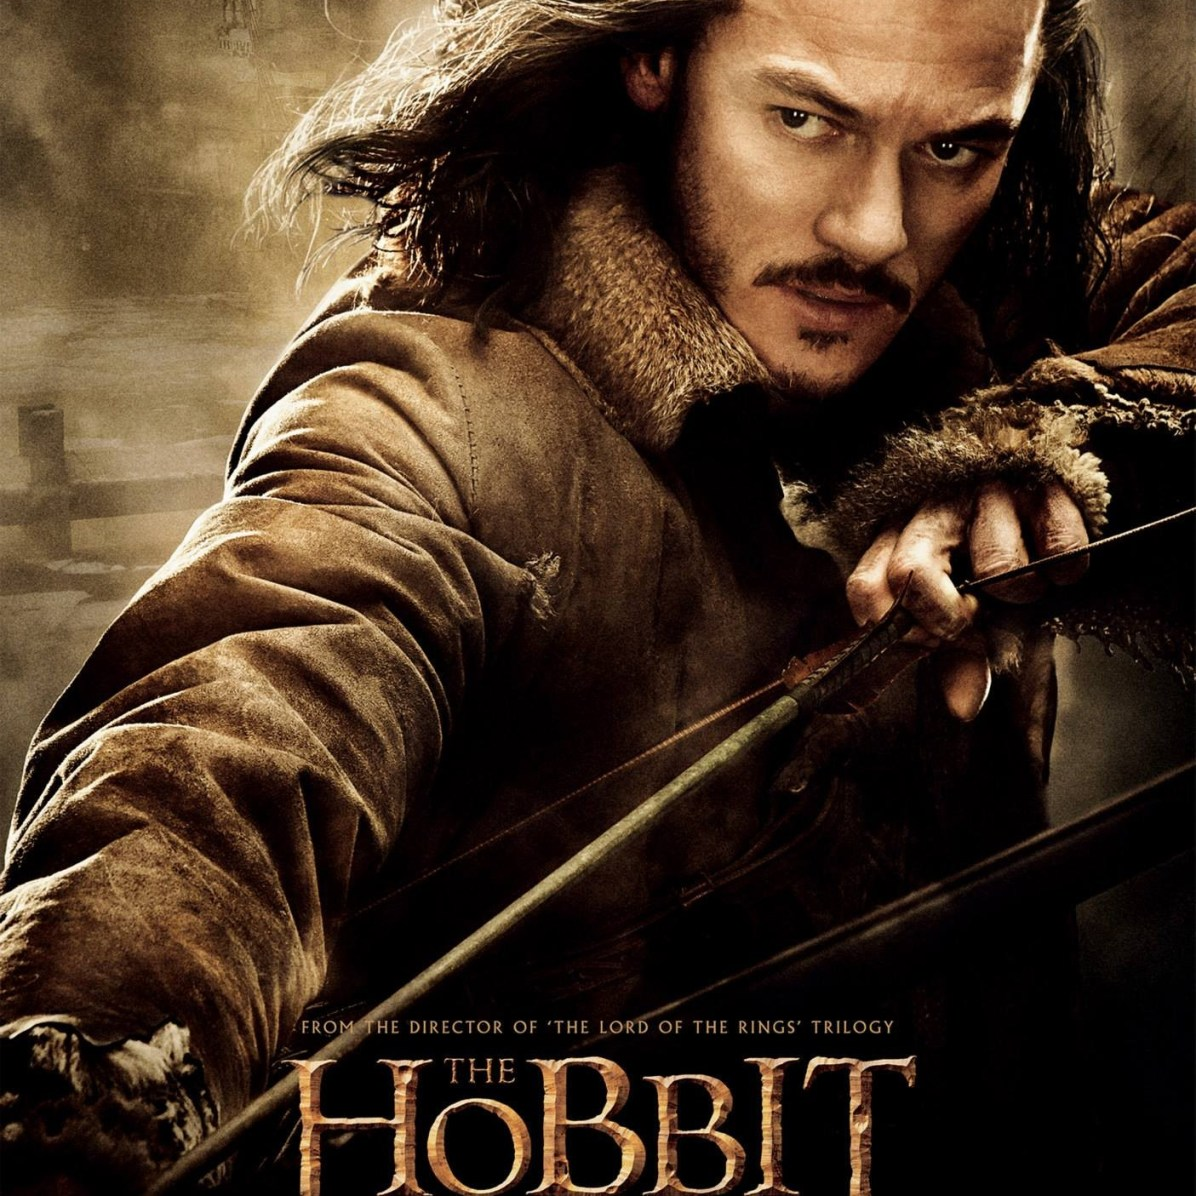 the-hobbit-the-desolation-of-smaug-character-poster-bard